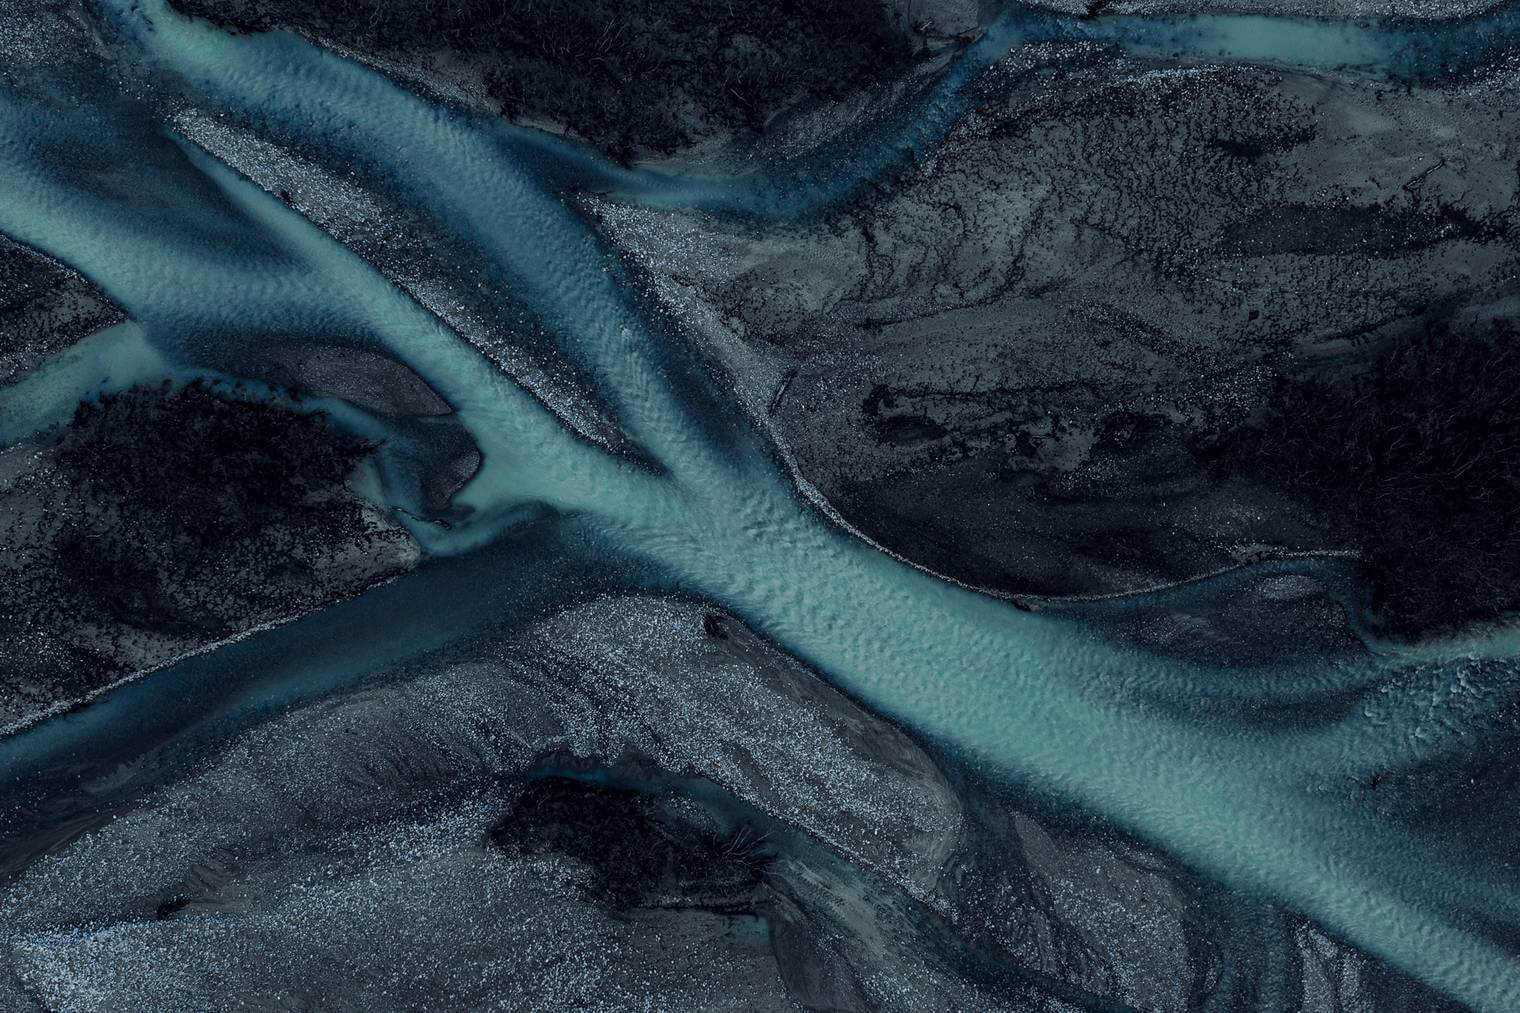 Drone Image of Dark and Abstract River